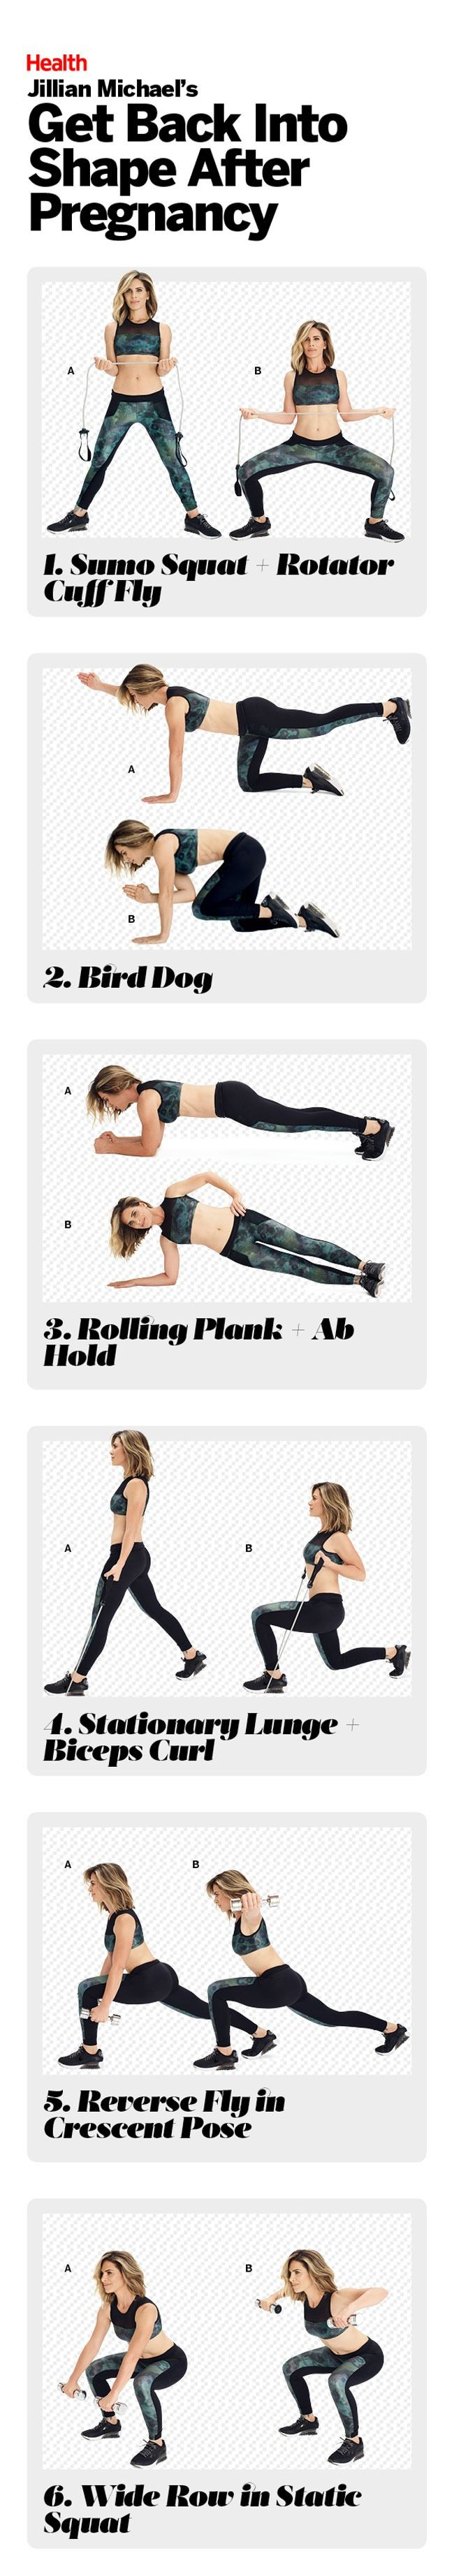 Get your body back with this post-pregnancy workout from celeb train Jillian Michaels.   Health.com